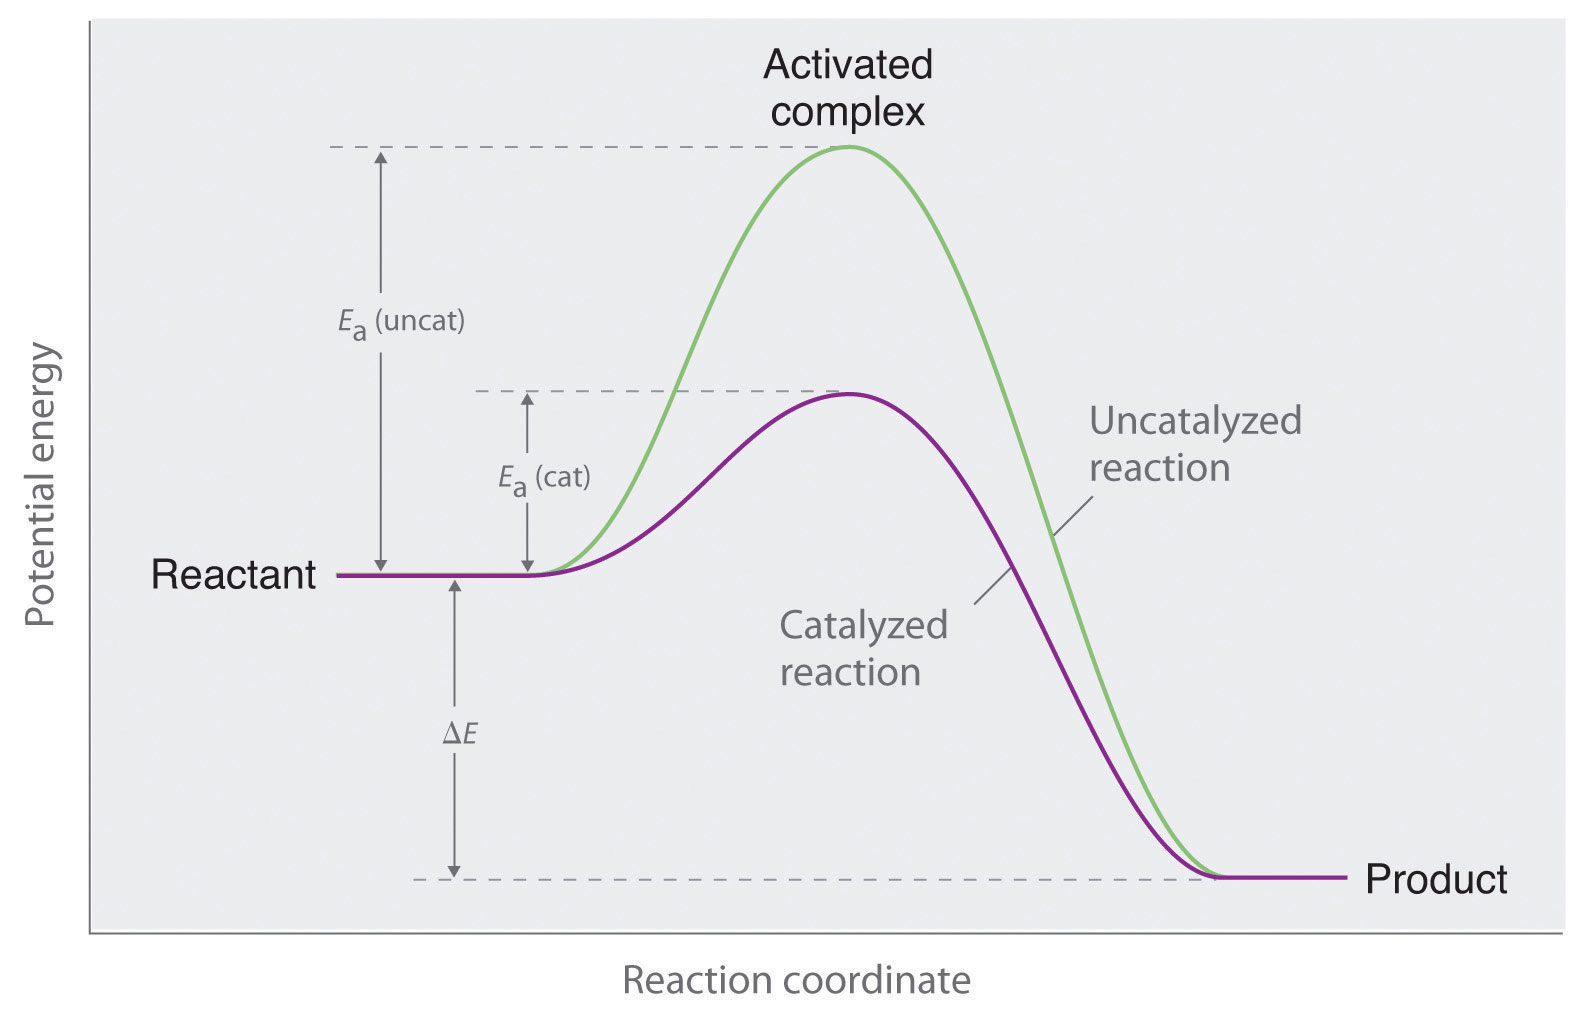 General chemistry principles patterns and applications 10 this graph compares potential energy diagrams for a single step reaction in the presence and absence of a catalyst the only effect of the catalyst is to pooptronica